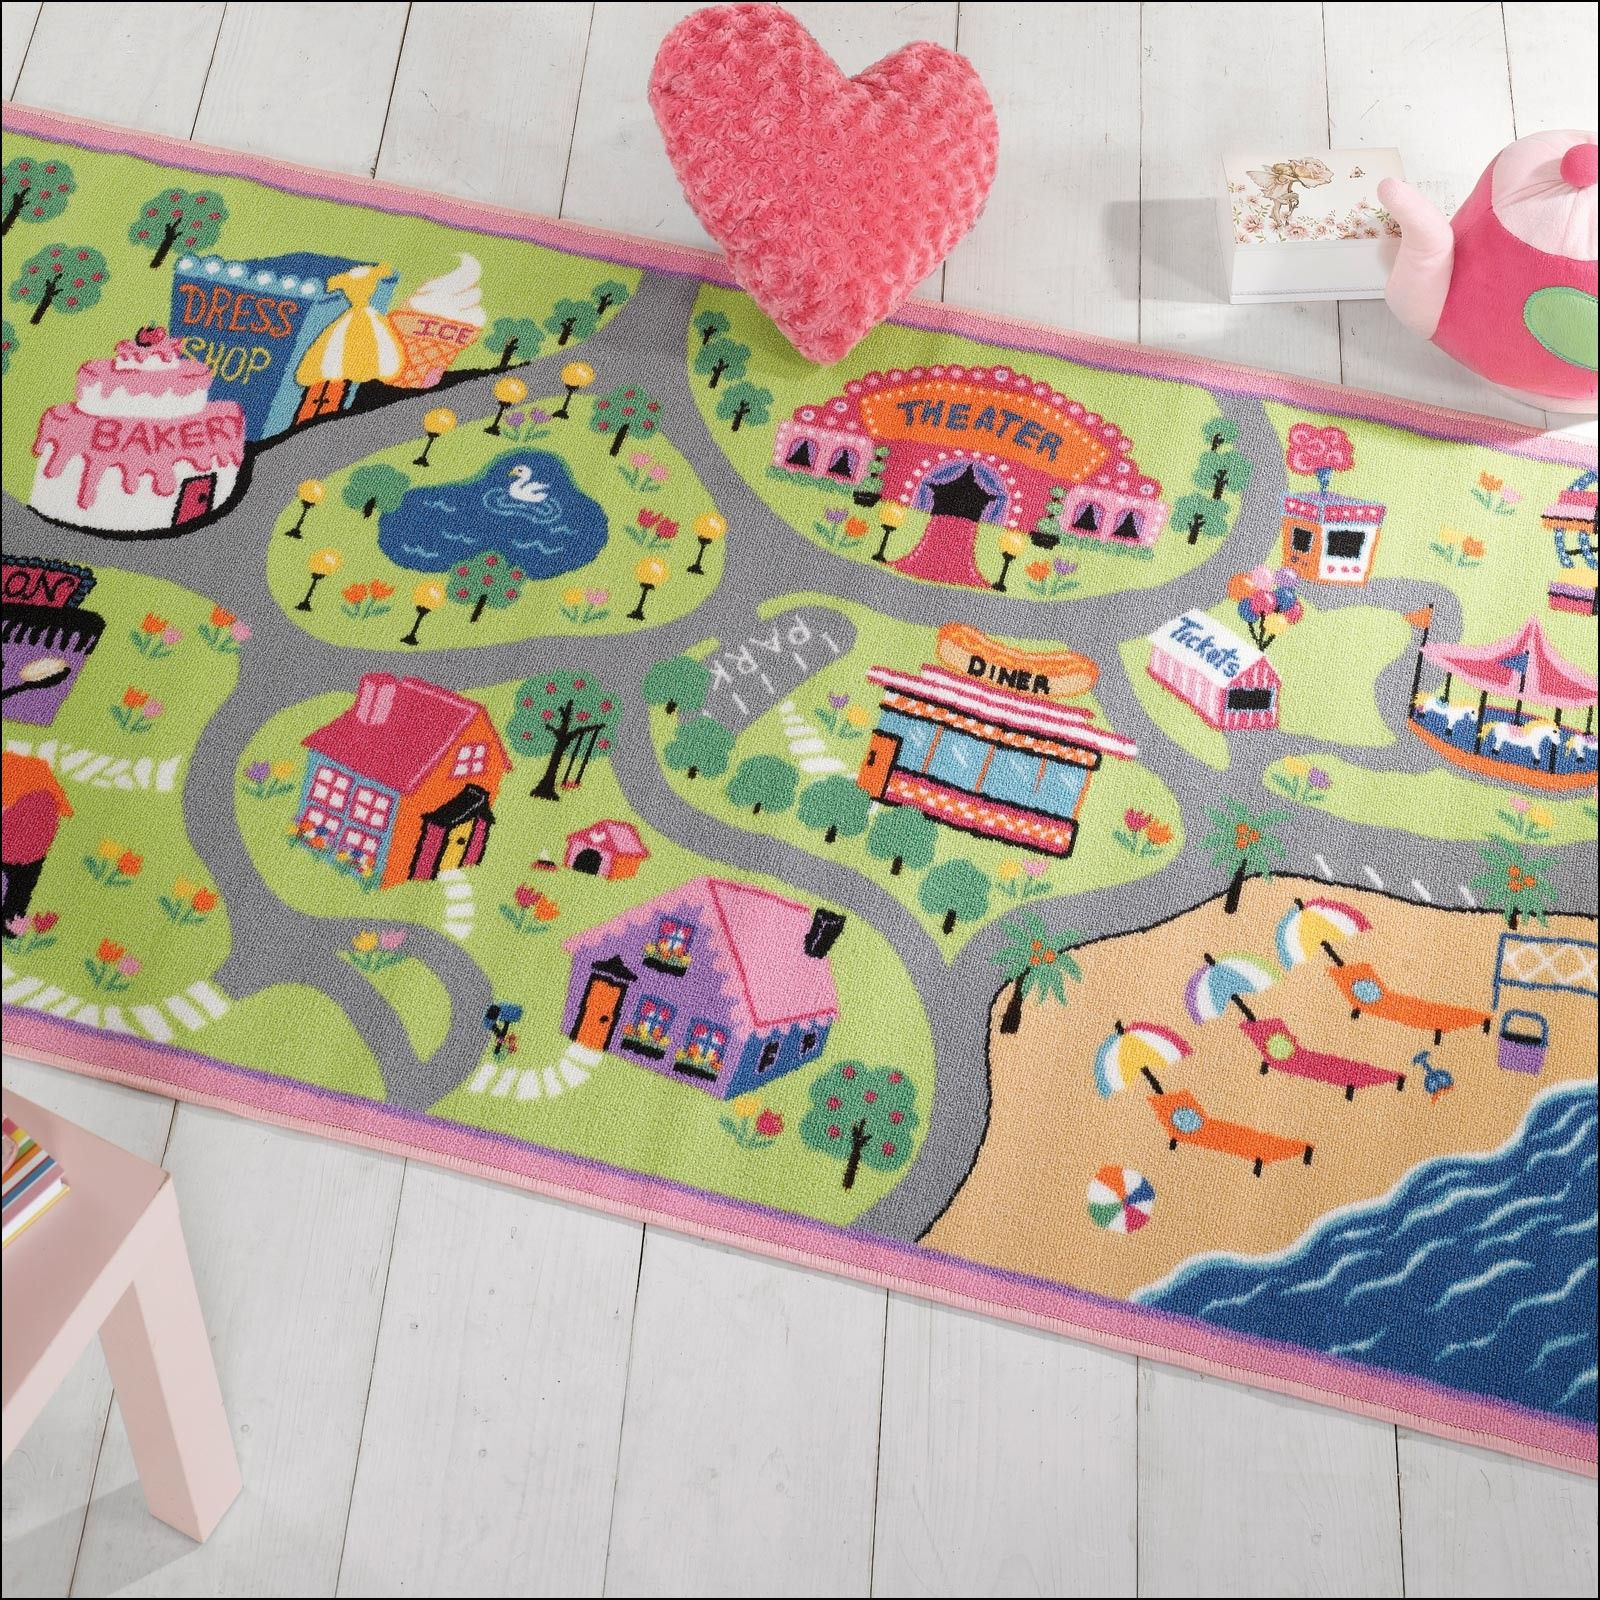 ideas bathtub owl accessories kids beach cartoon rug wall vanity girls bathroom design decor for color rugs